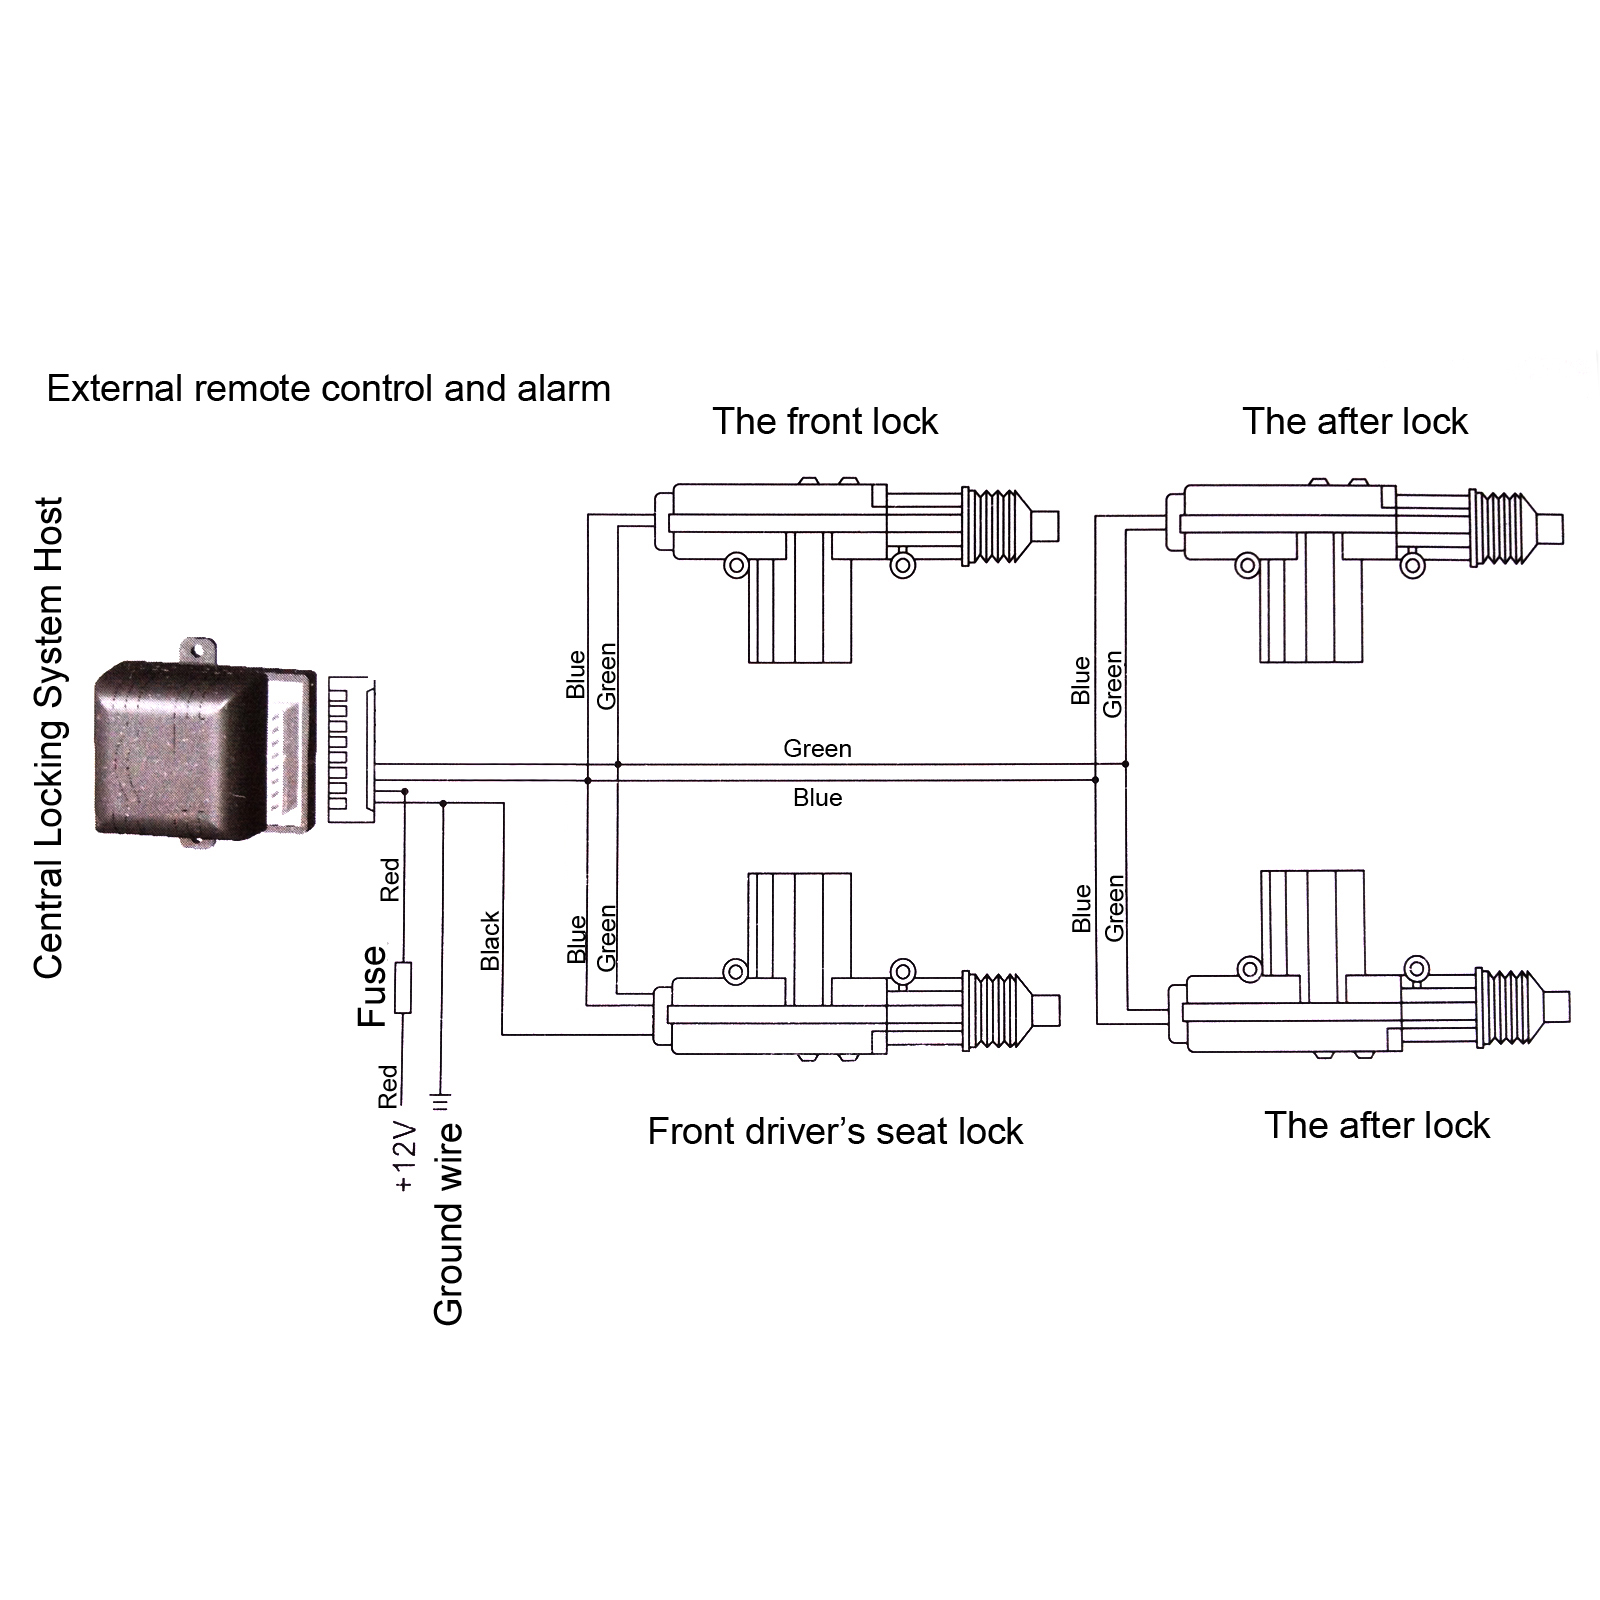 Universal Central Locking Kit Wiring Diagram Electrical Car Lock 4 Door Power Unlock Remote 2 Series And Parallel Circuits Diagrams